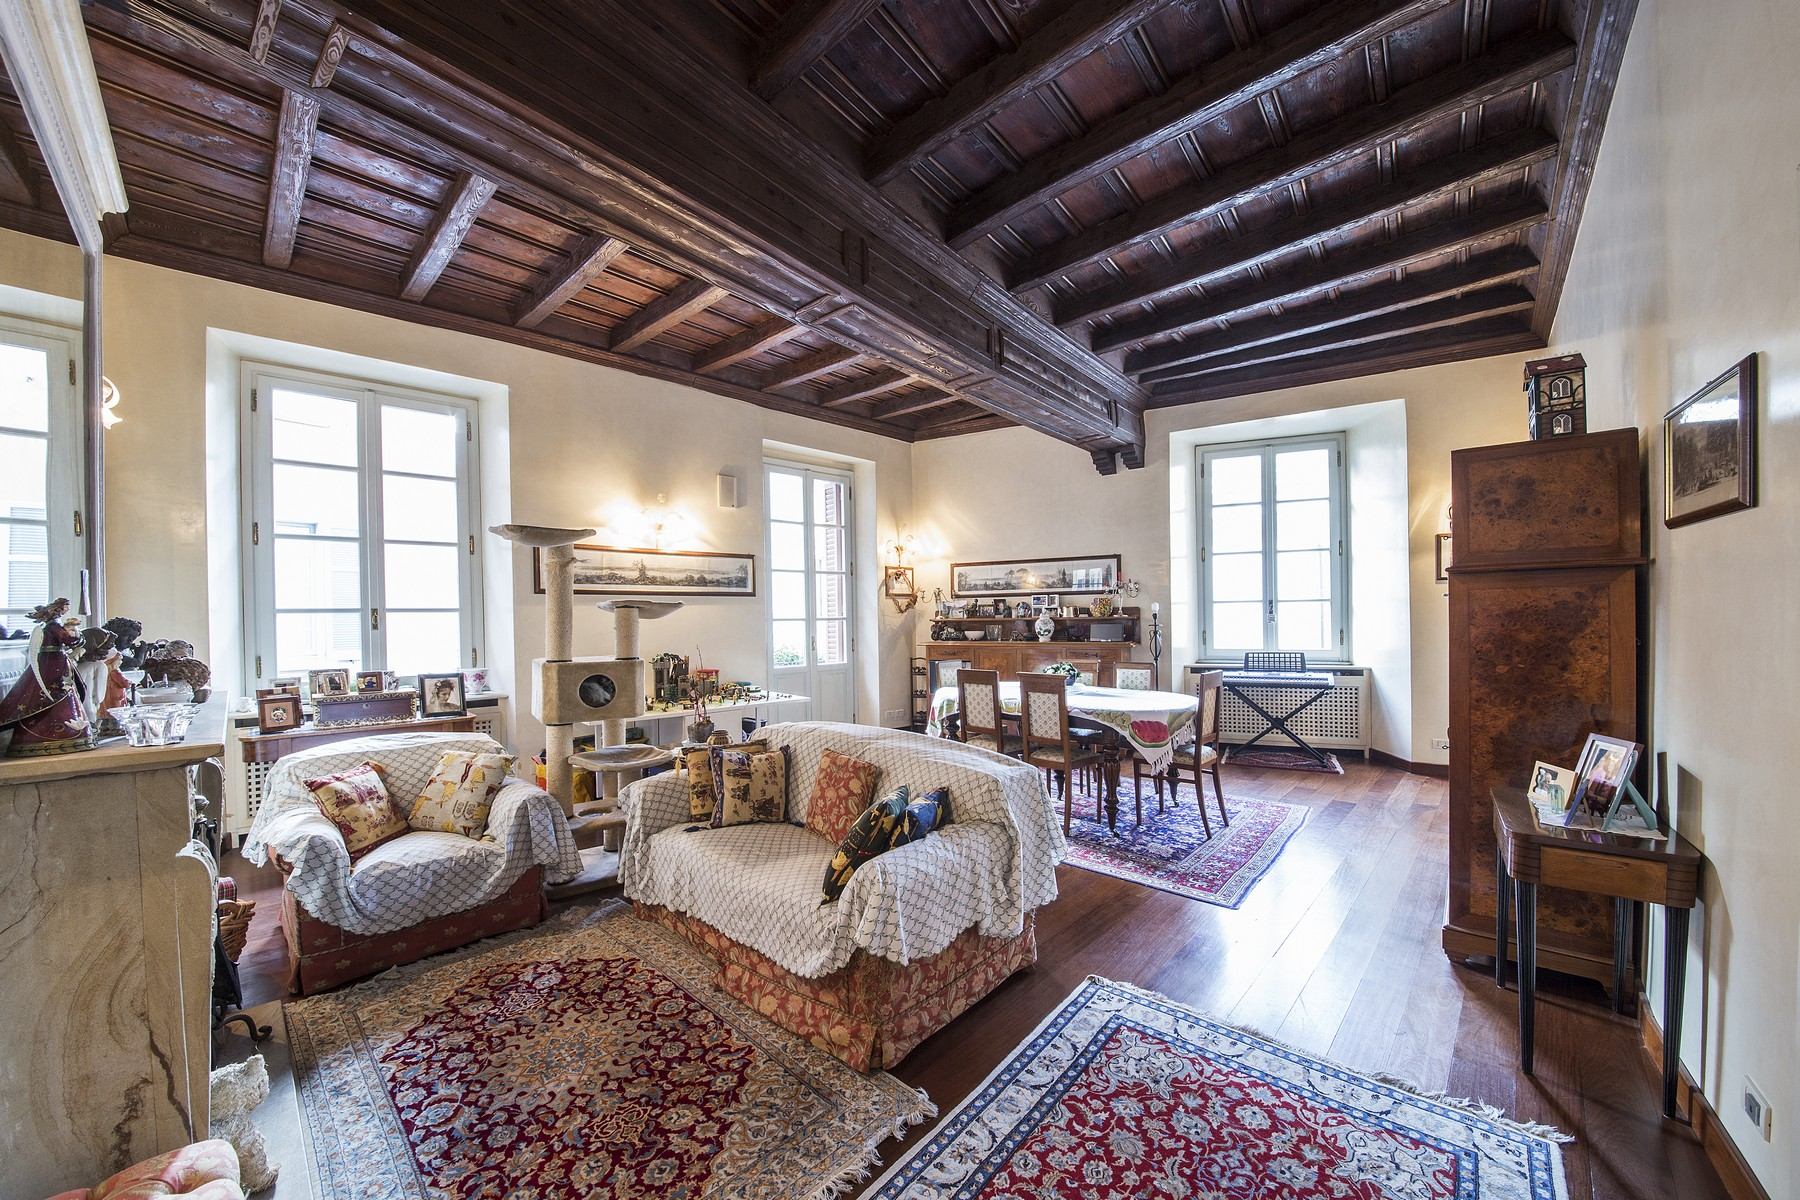 Apartment for Sale at Wonderful apartment in prestigious building in the center of Como Via Bonanomi Como, 22100 Italy